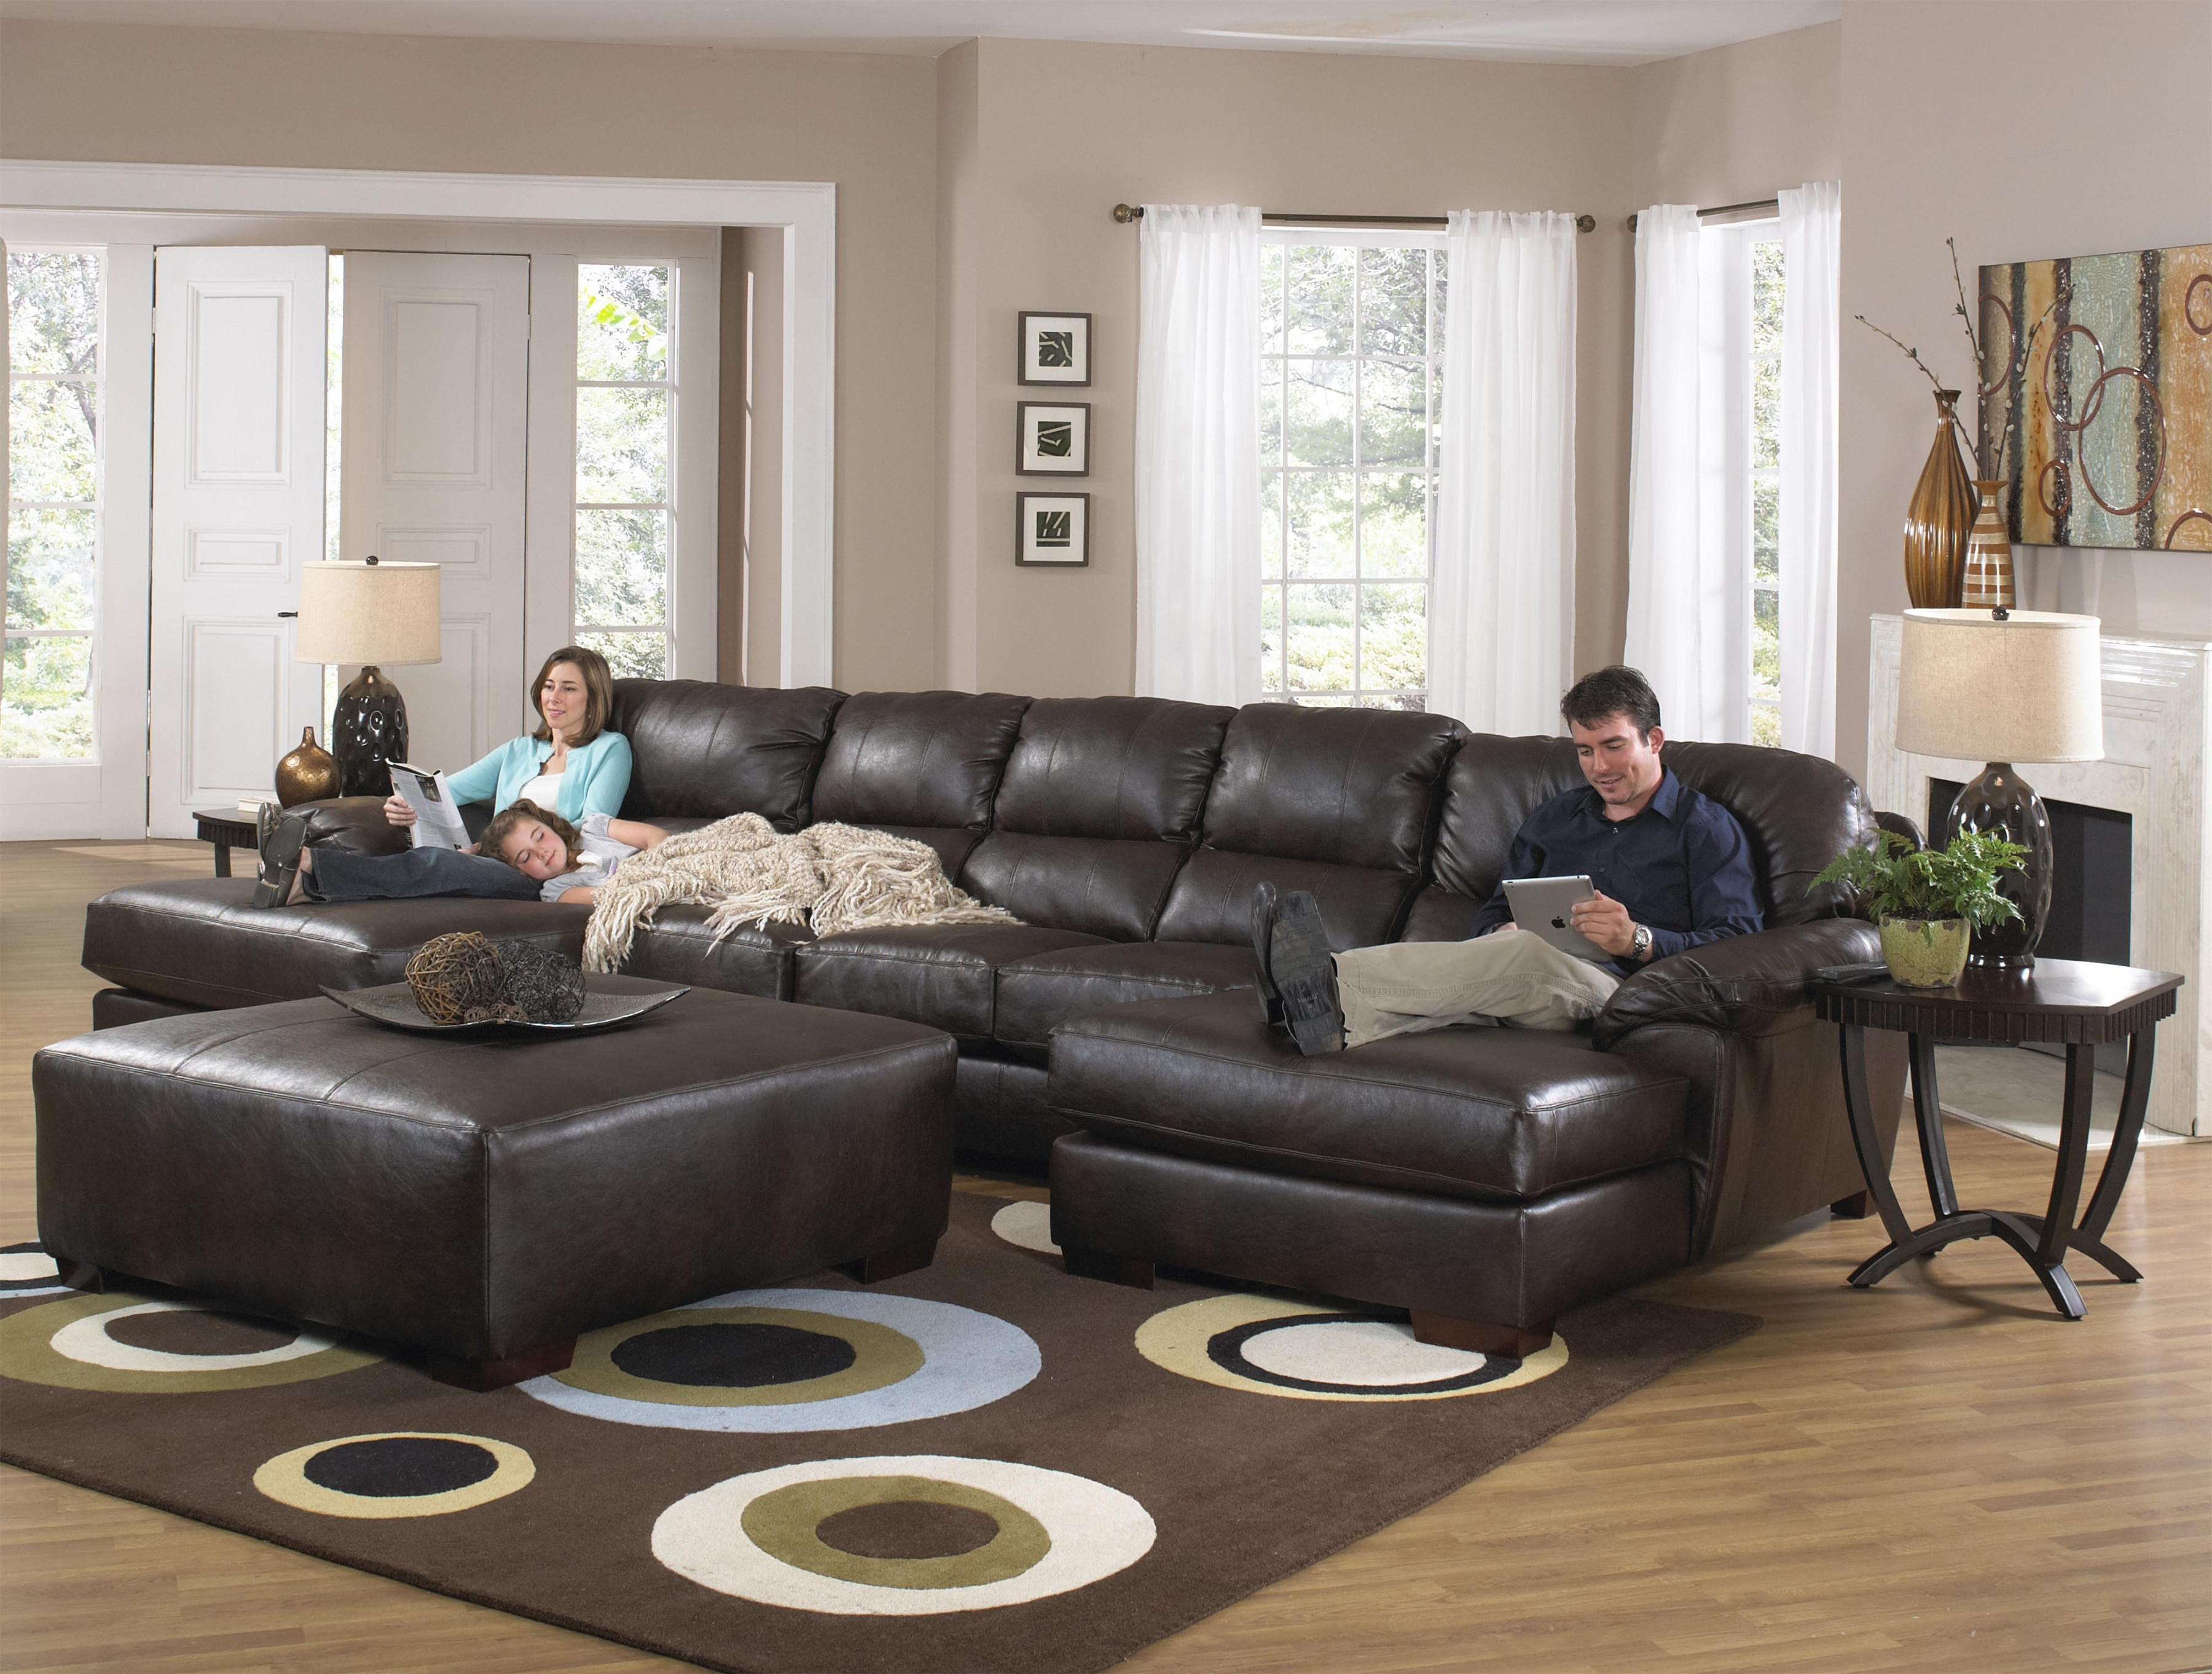 Two Chaise Sectional Sofa With Five Total Seatsjackson | Home Design Inside Sectional Sofas With Chaise (View 14 of 15)